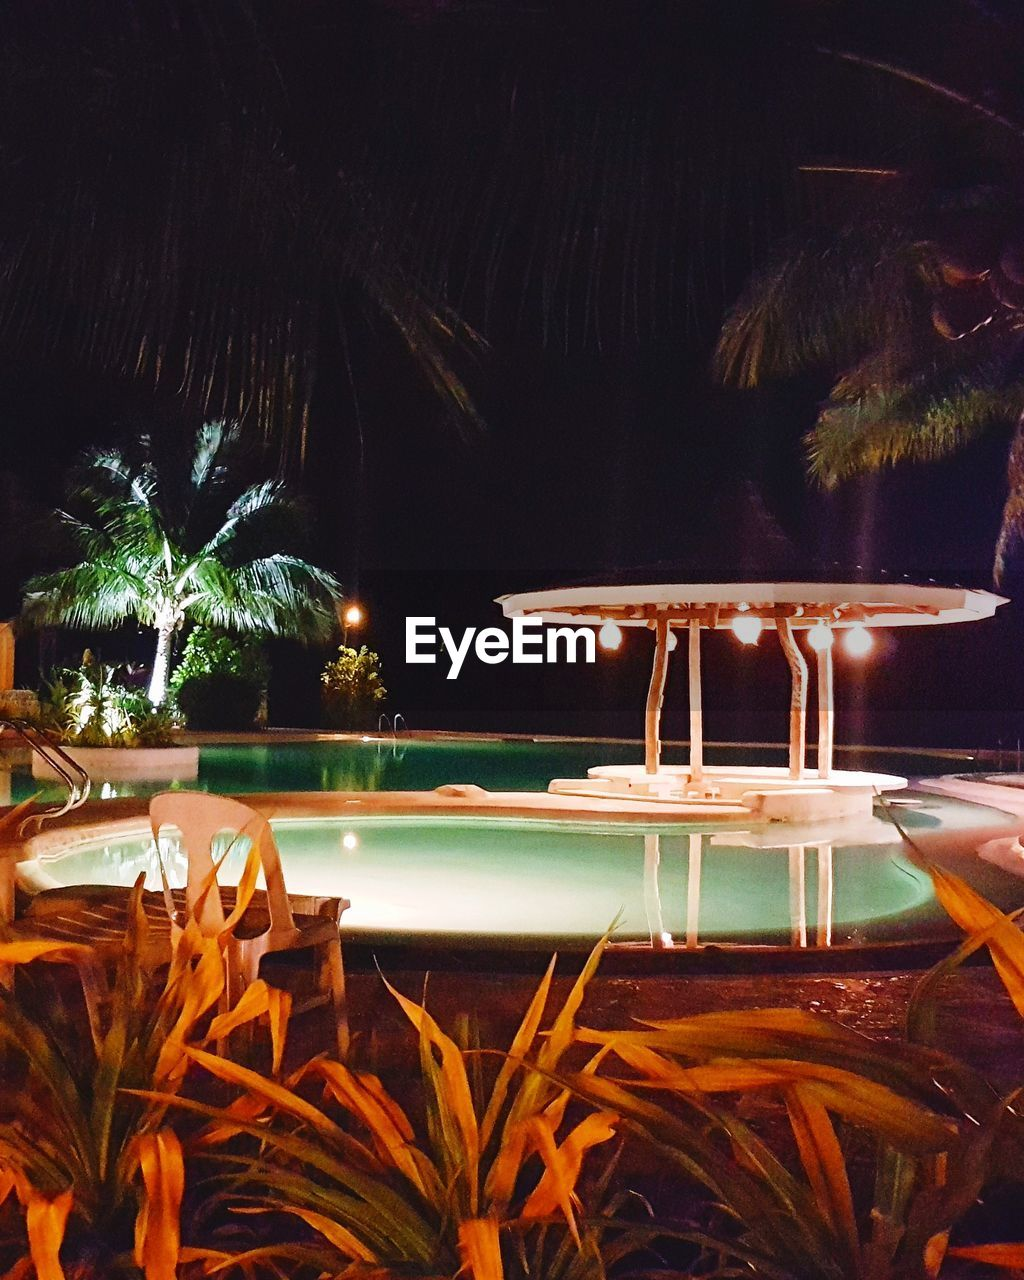 illuminated, night, water, palm tree, nature, tropical climate, tree, plant, no people, pool, swimming pool, sea, tourist resort, travel destinations, table, outdoors, leaf, reflection, architecture, palm leaf